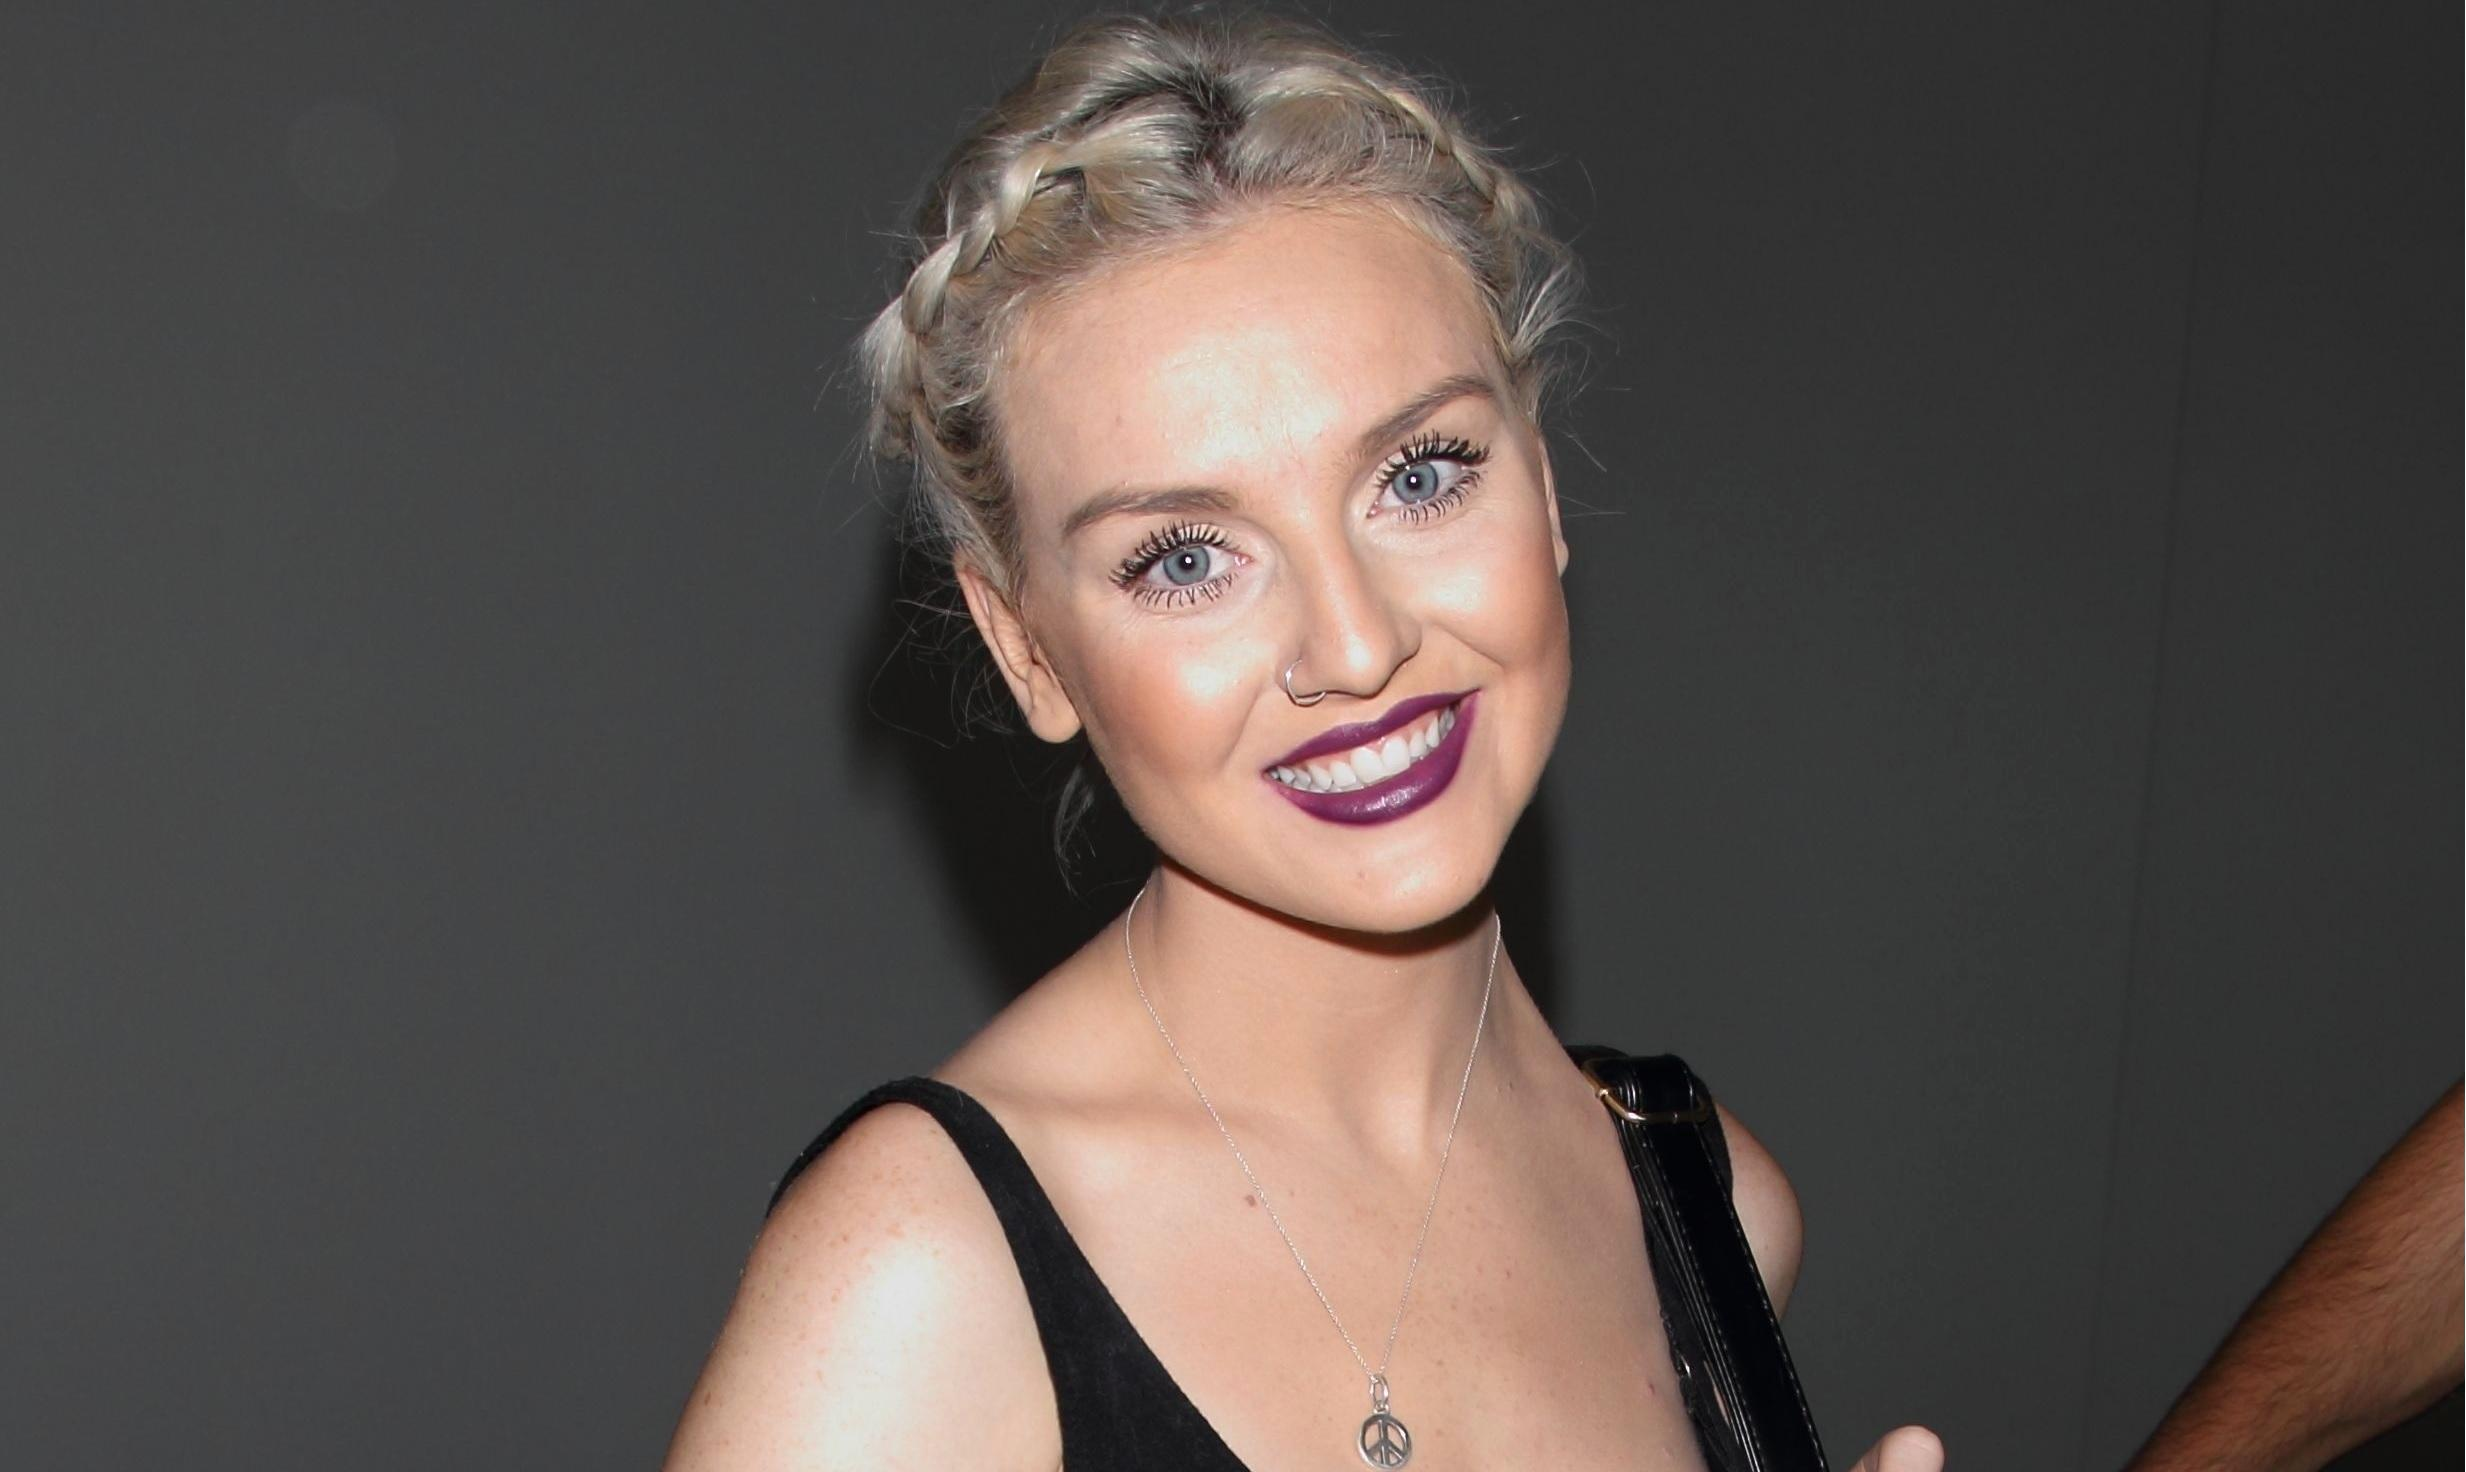 Pictures Of Perrie Edwards